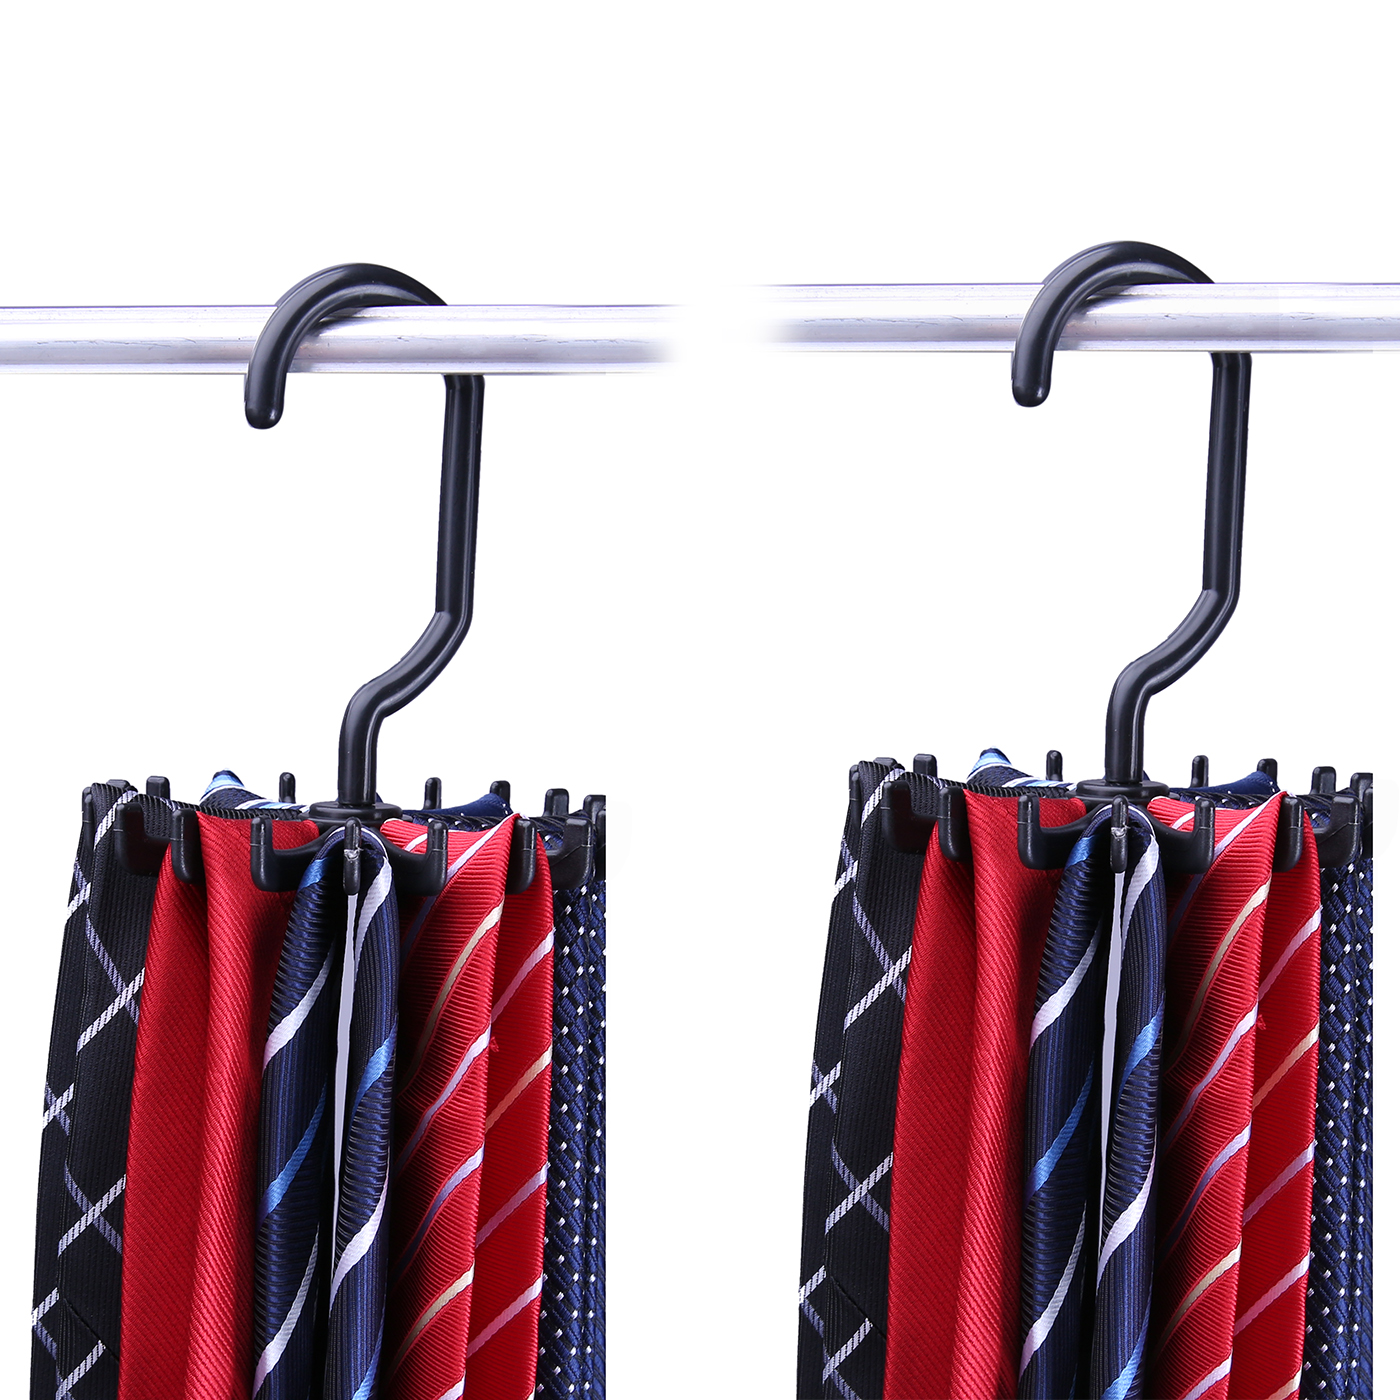 HDE Rotating Closet Tie Rack 2 Pack Necktie Hanger Organizer Compact  Non Slip Rotating Design